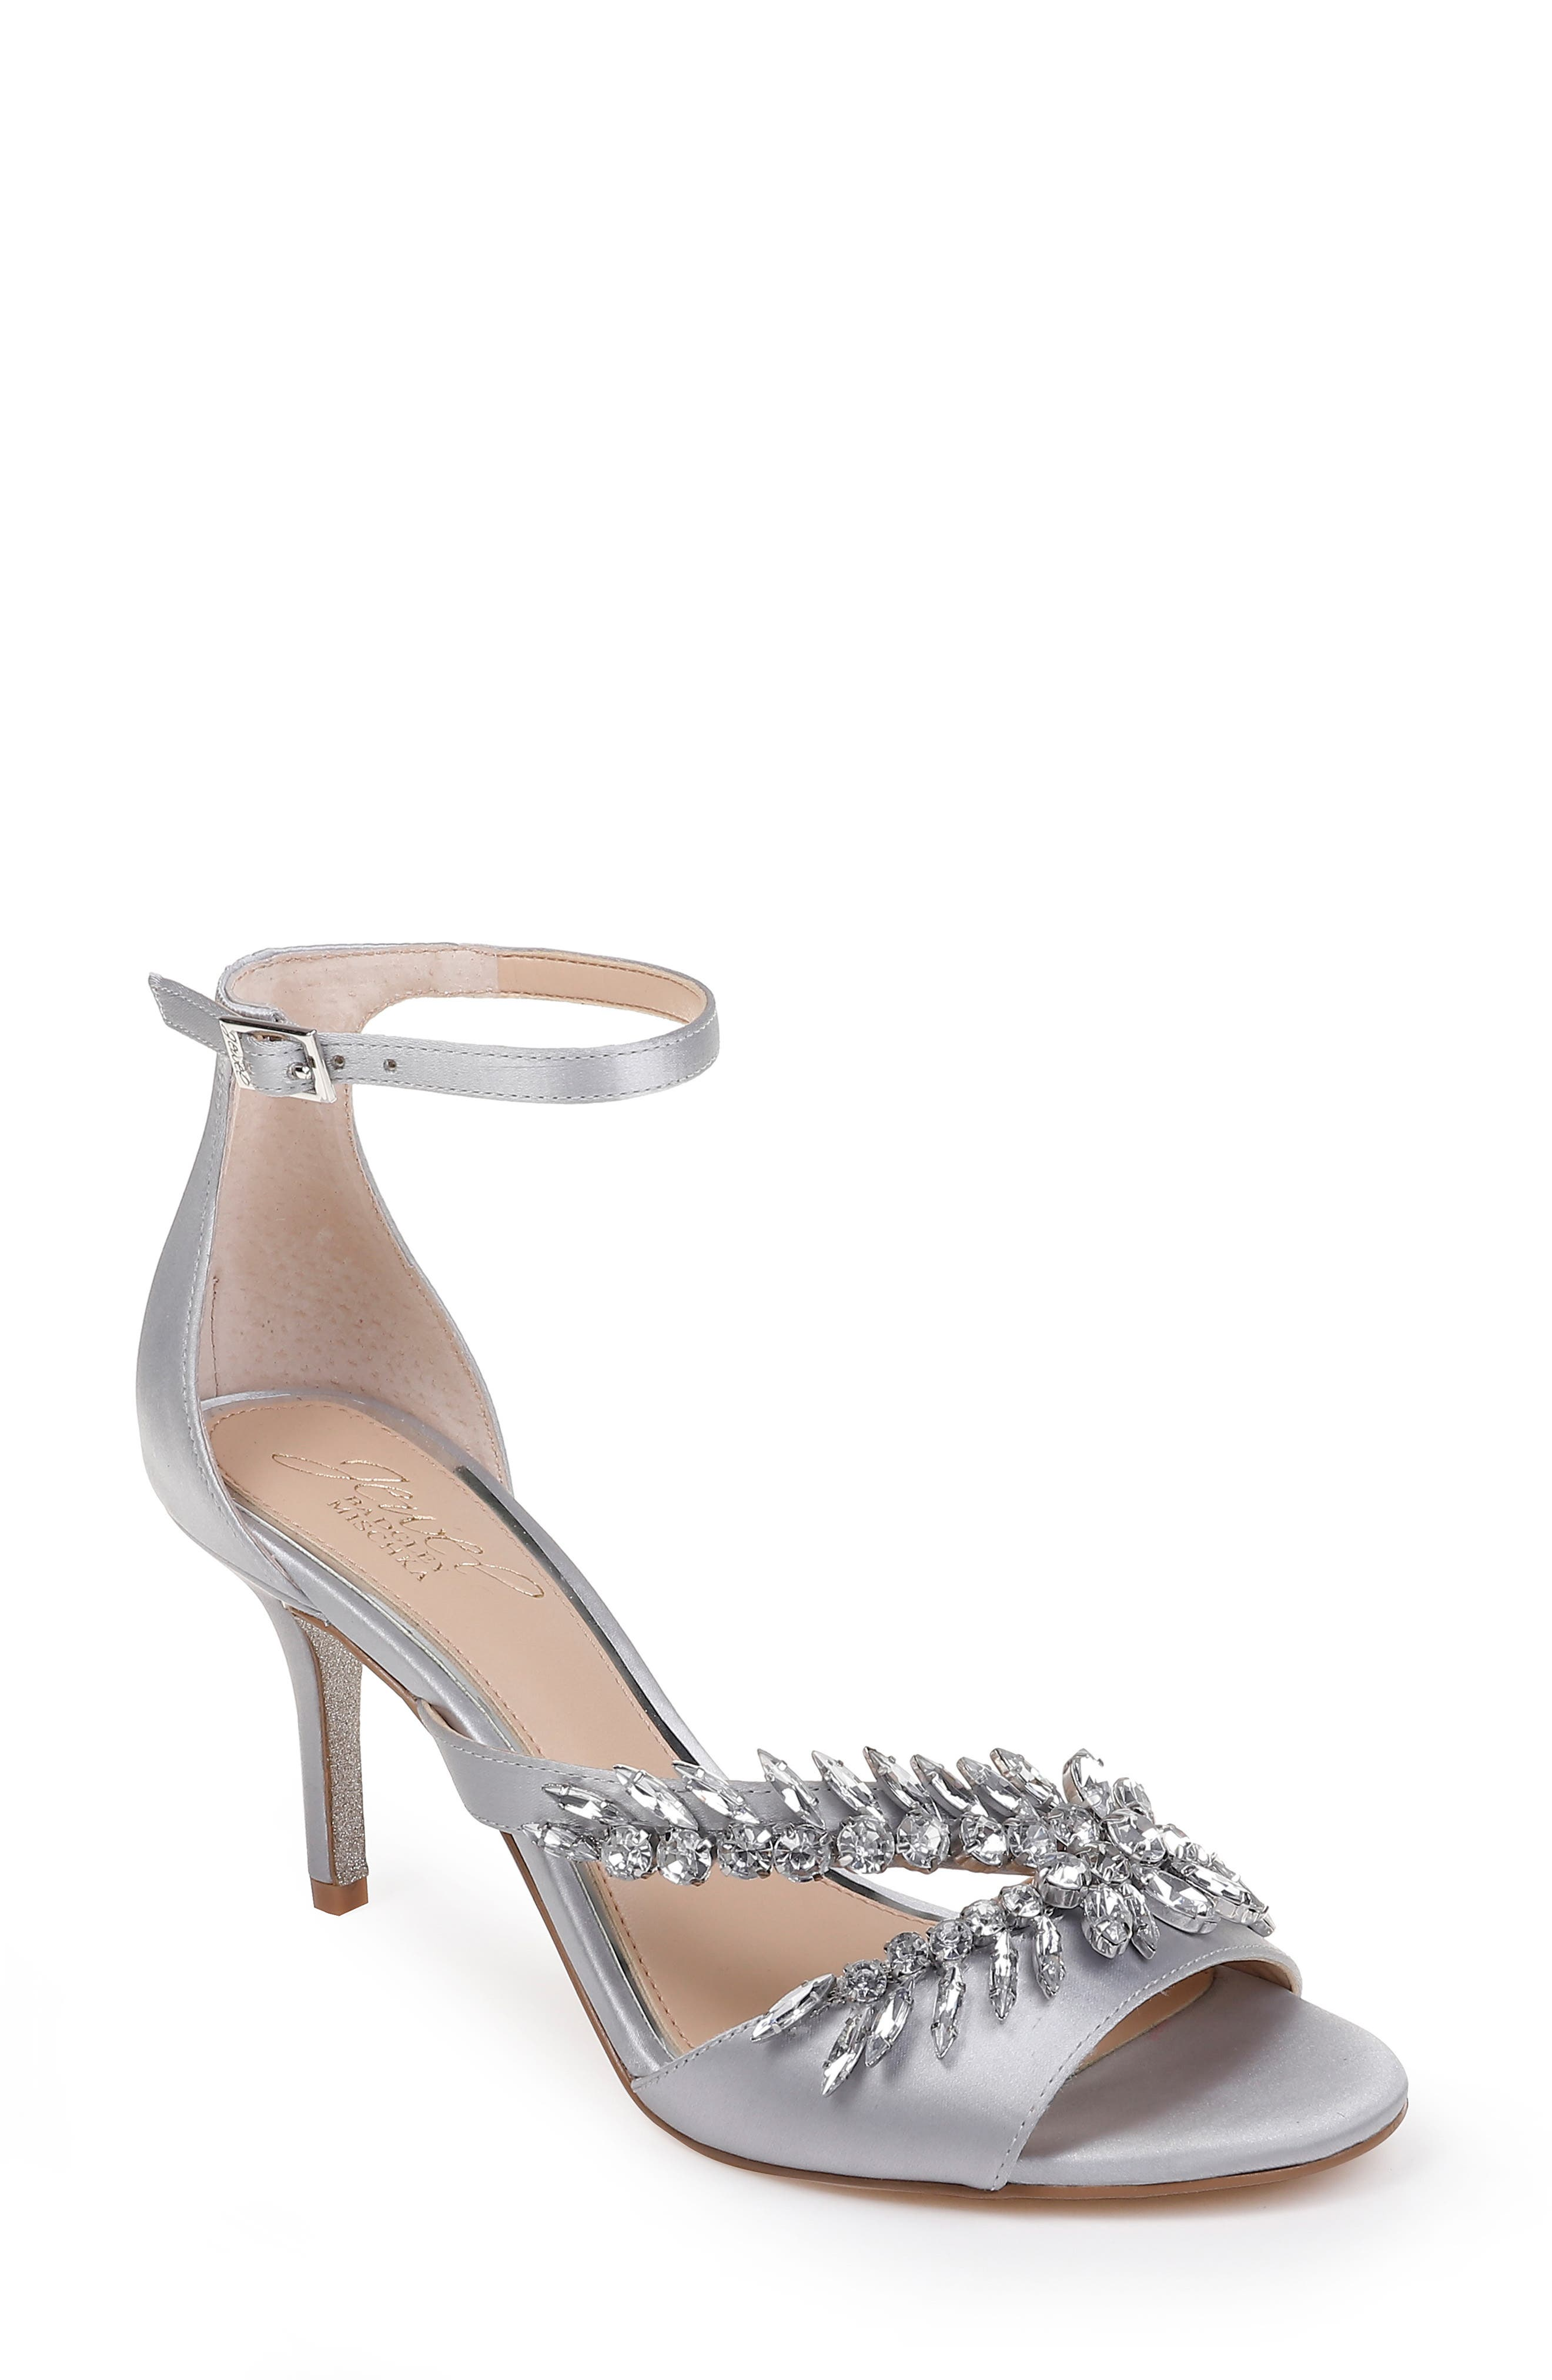 Kailee Embellished Ankle Strap Sandal,                             Main thumbnail 1, color,                             SILVER CRYSTAL SATIN